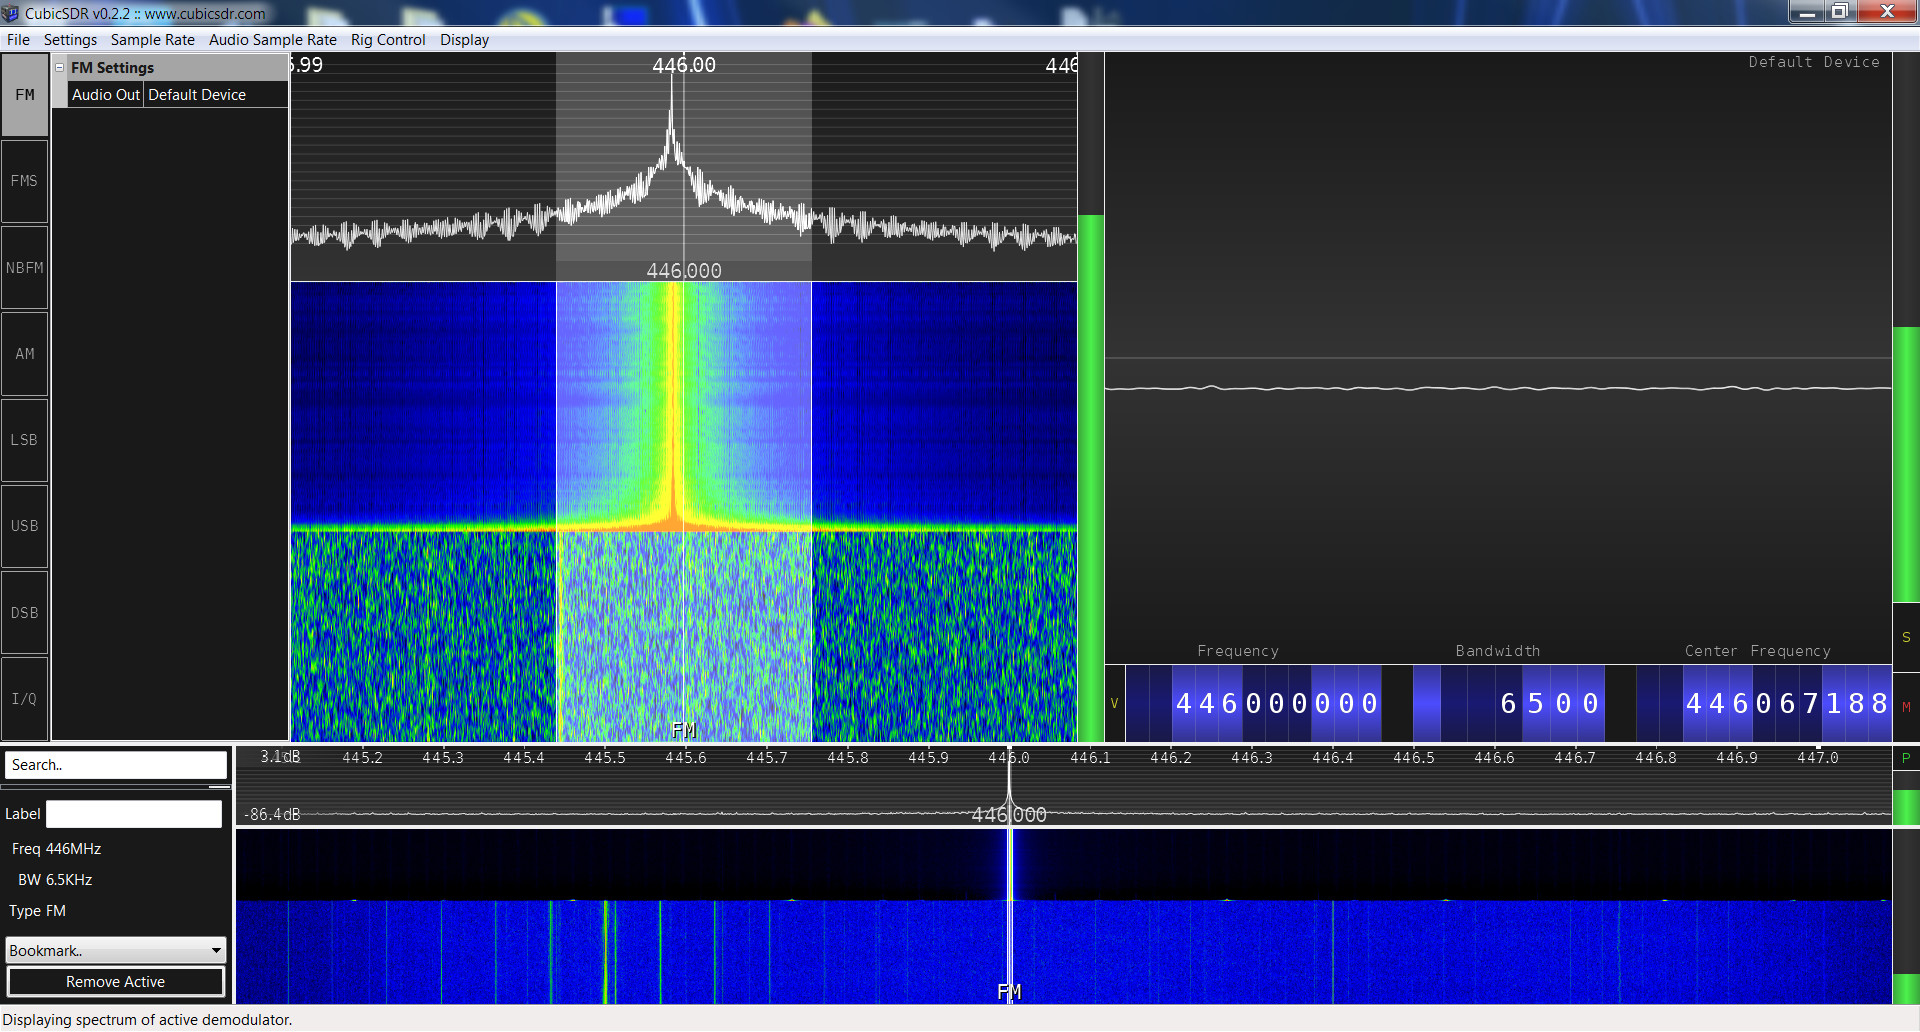 Baofeng UV-5R5 SRD spectrum analysis